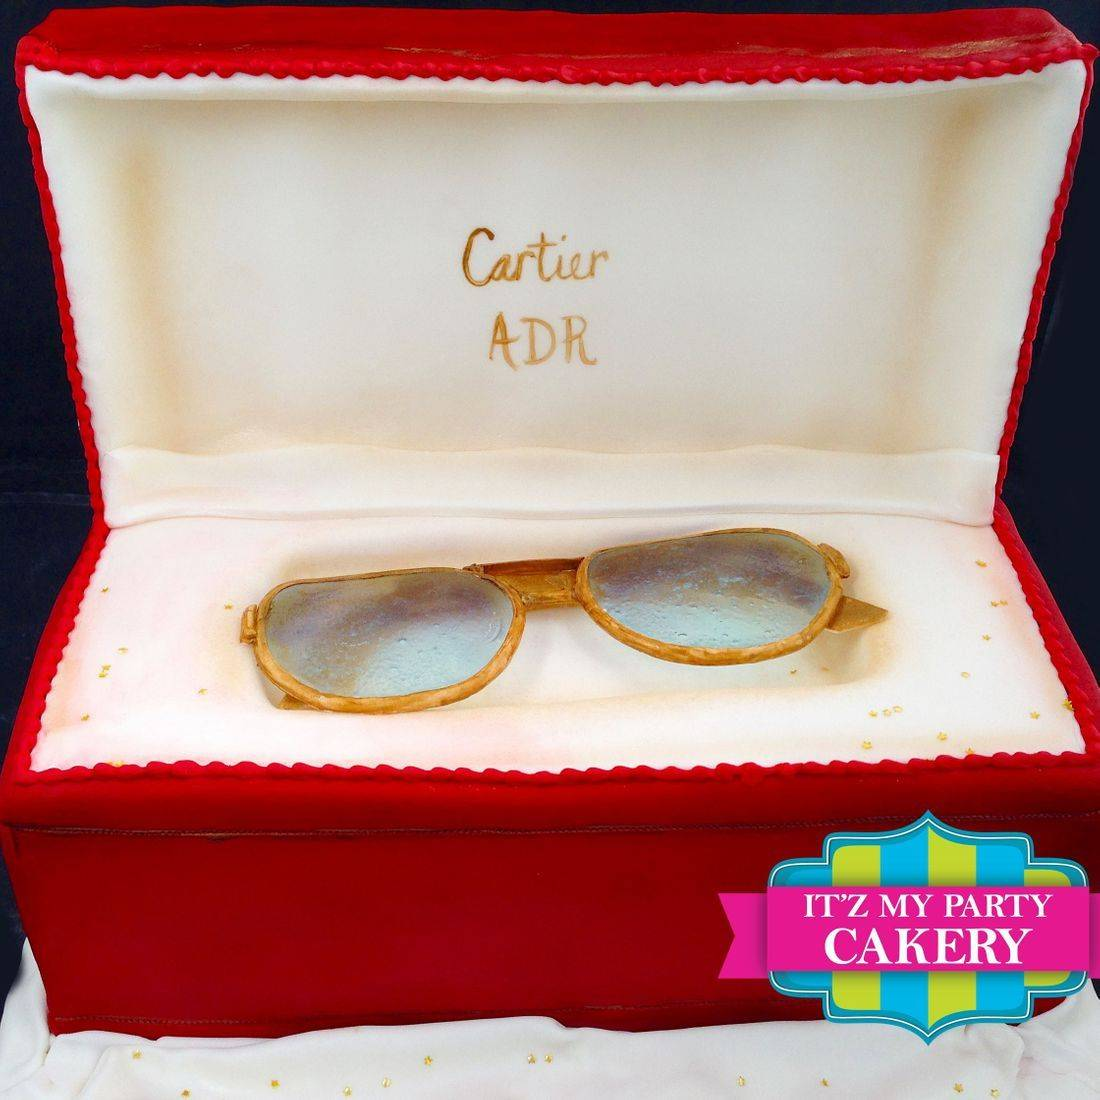 Cartier Glasses Carved Dimensional Cake Milwaukee